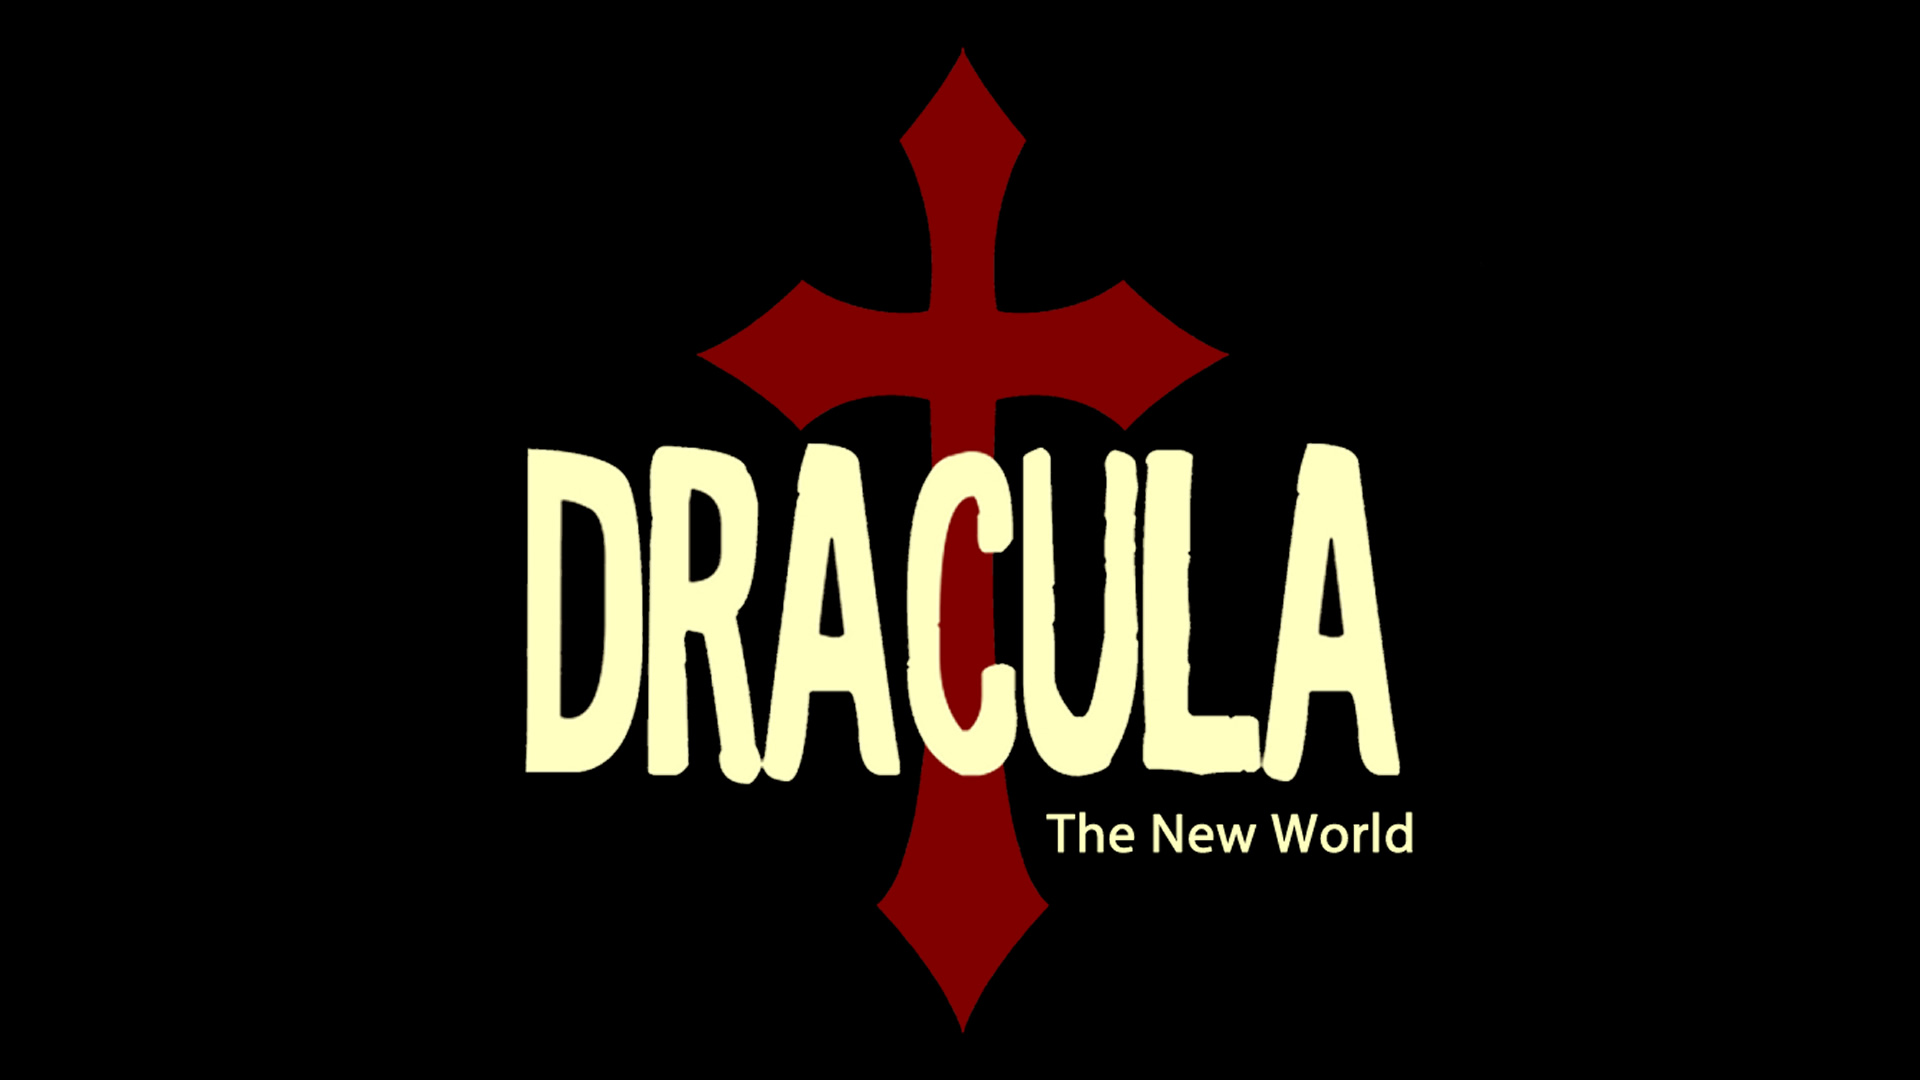 Dracula: The New World (Oct 28-Nov 1)